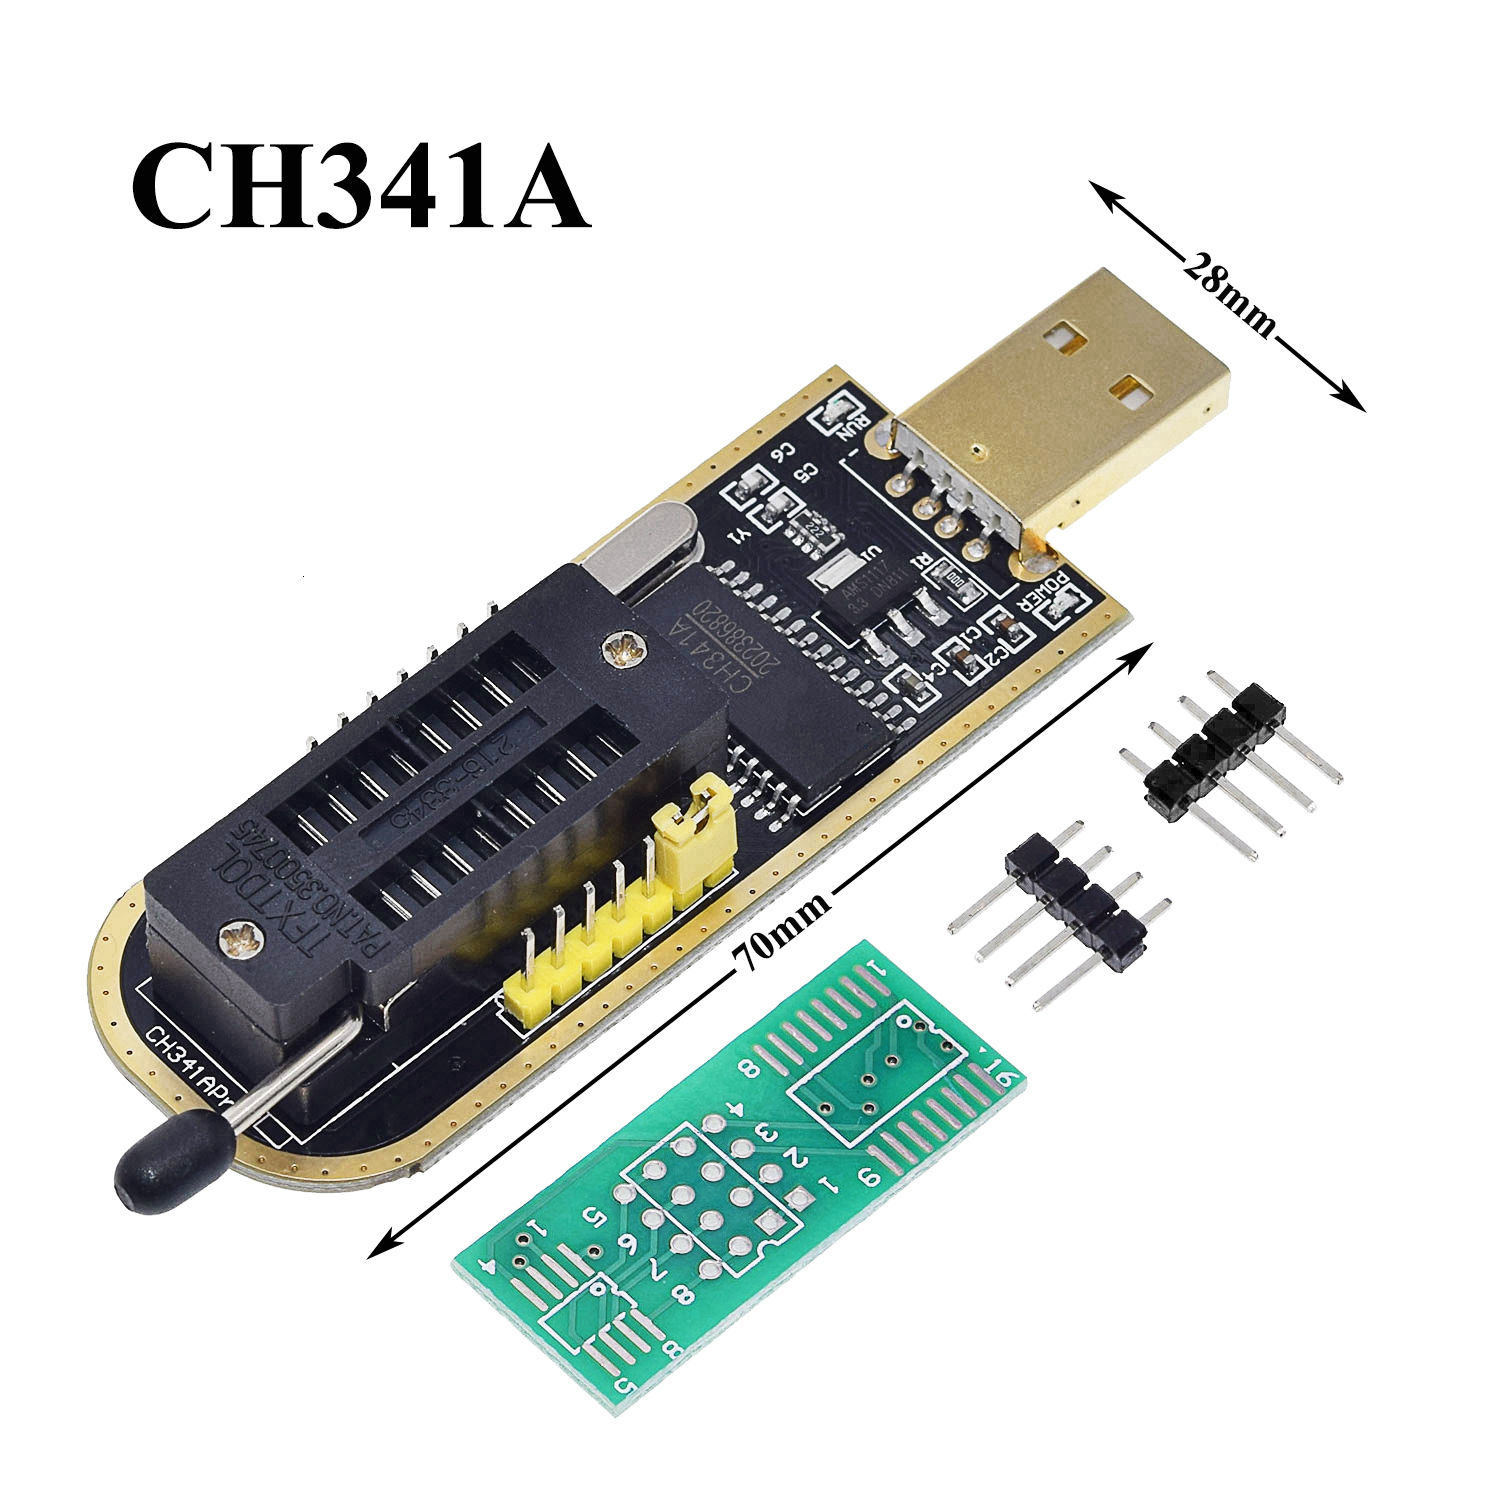 CH341A CH341 24 25 Series EEPROM Flash BIOS USB Programmer with Software /& Driver